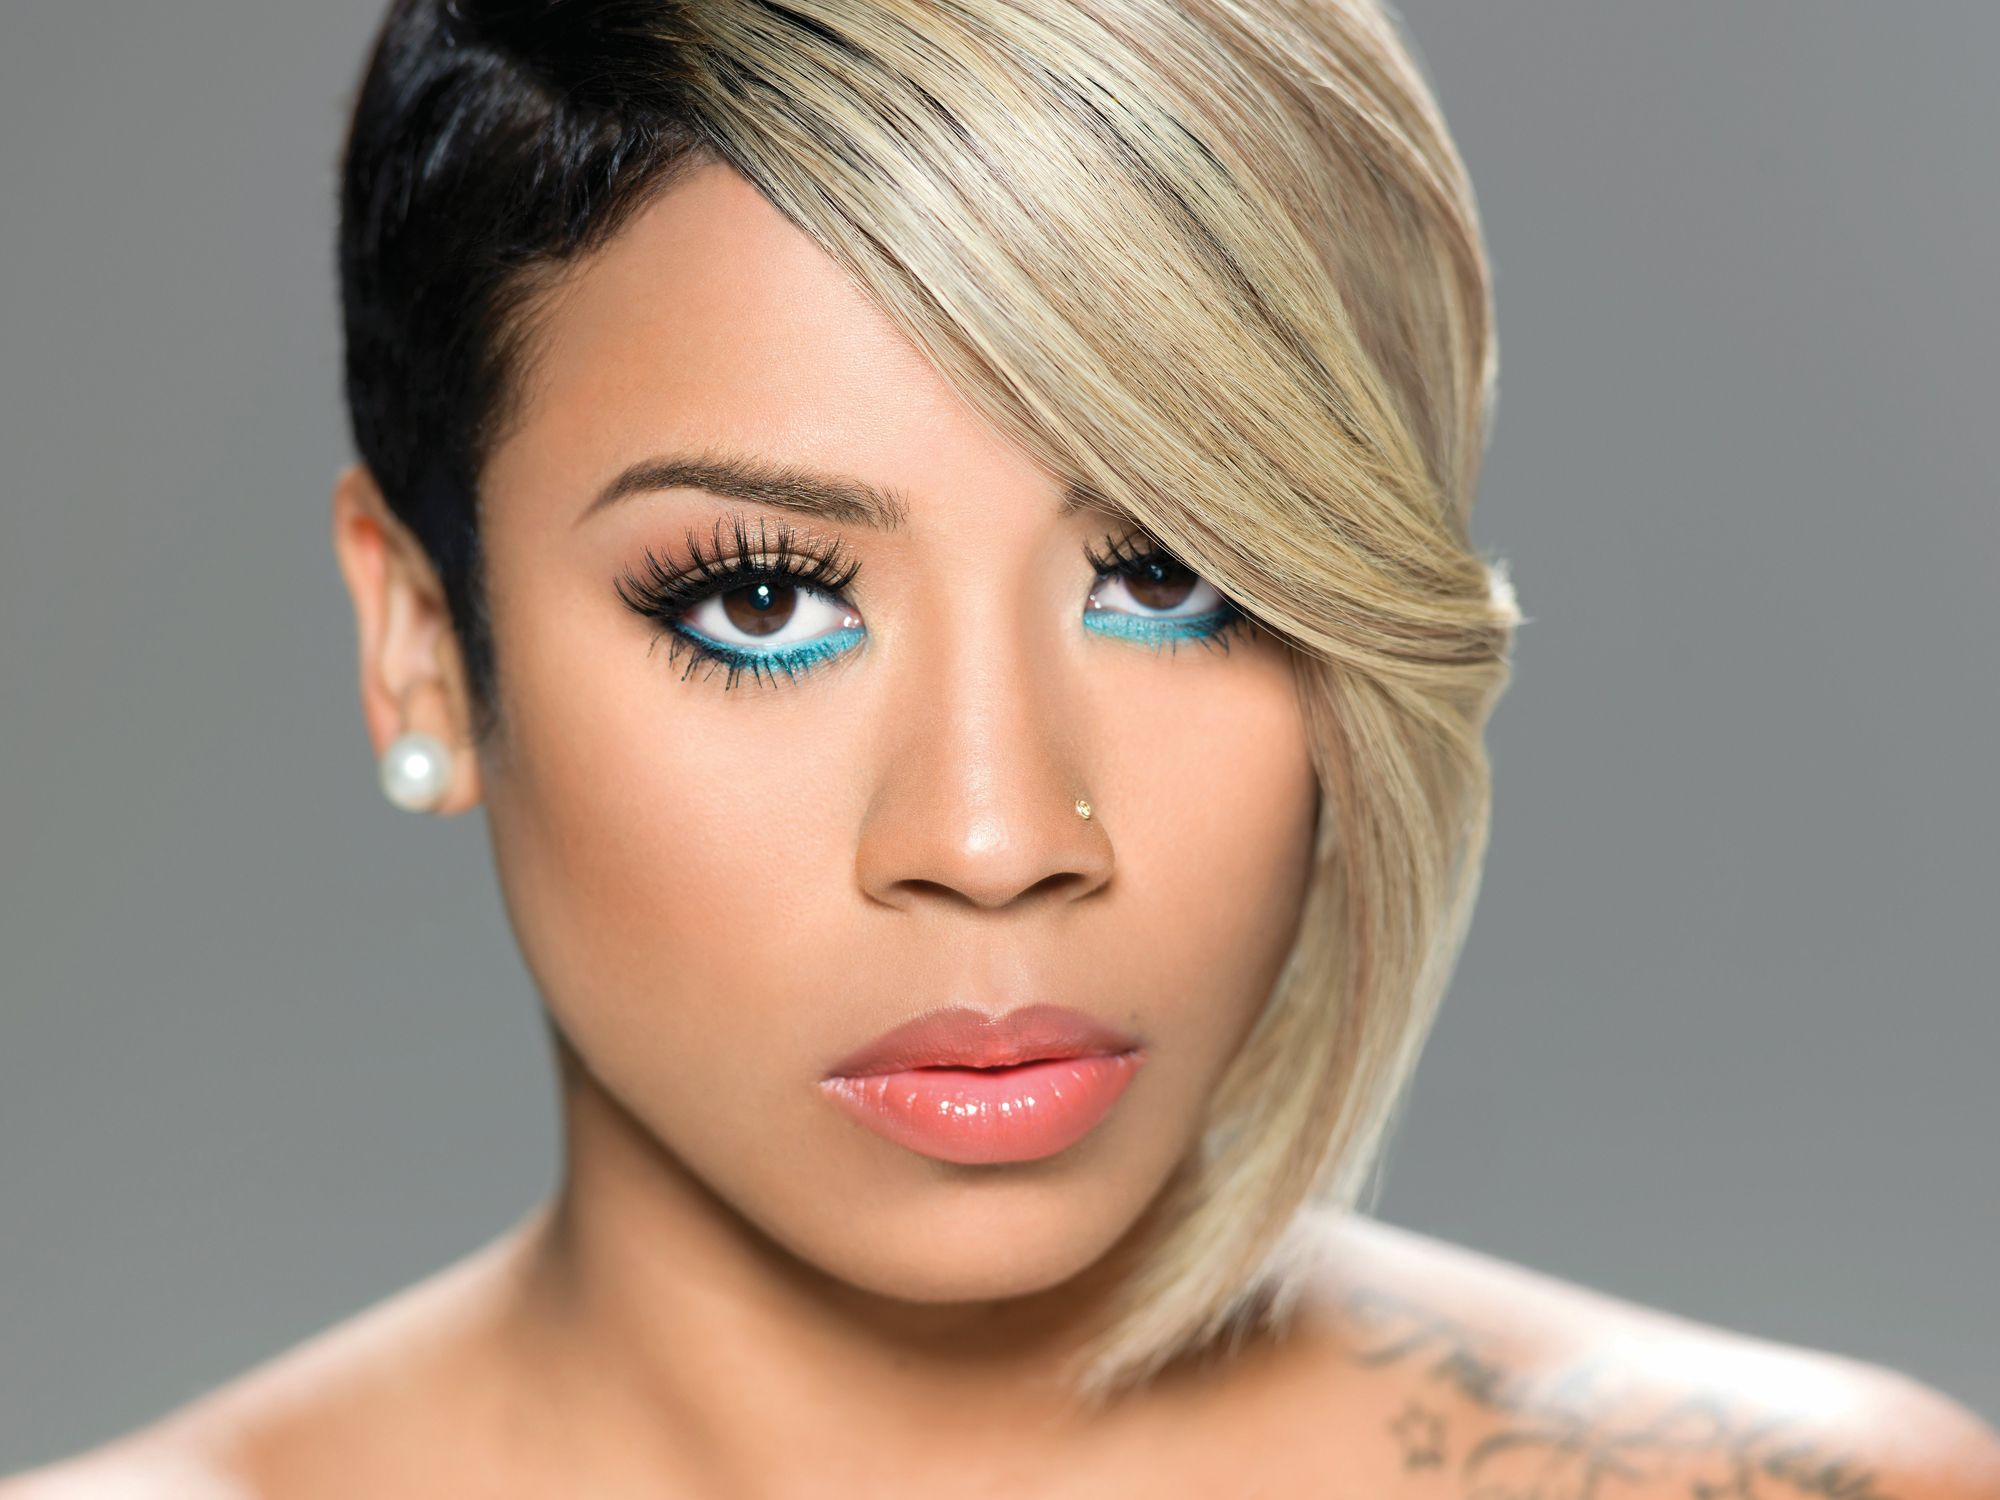 Talking about Keyshia Cole haircuts the singer has worn her hair in